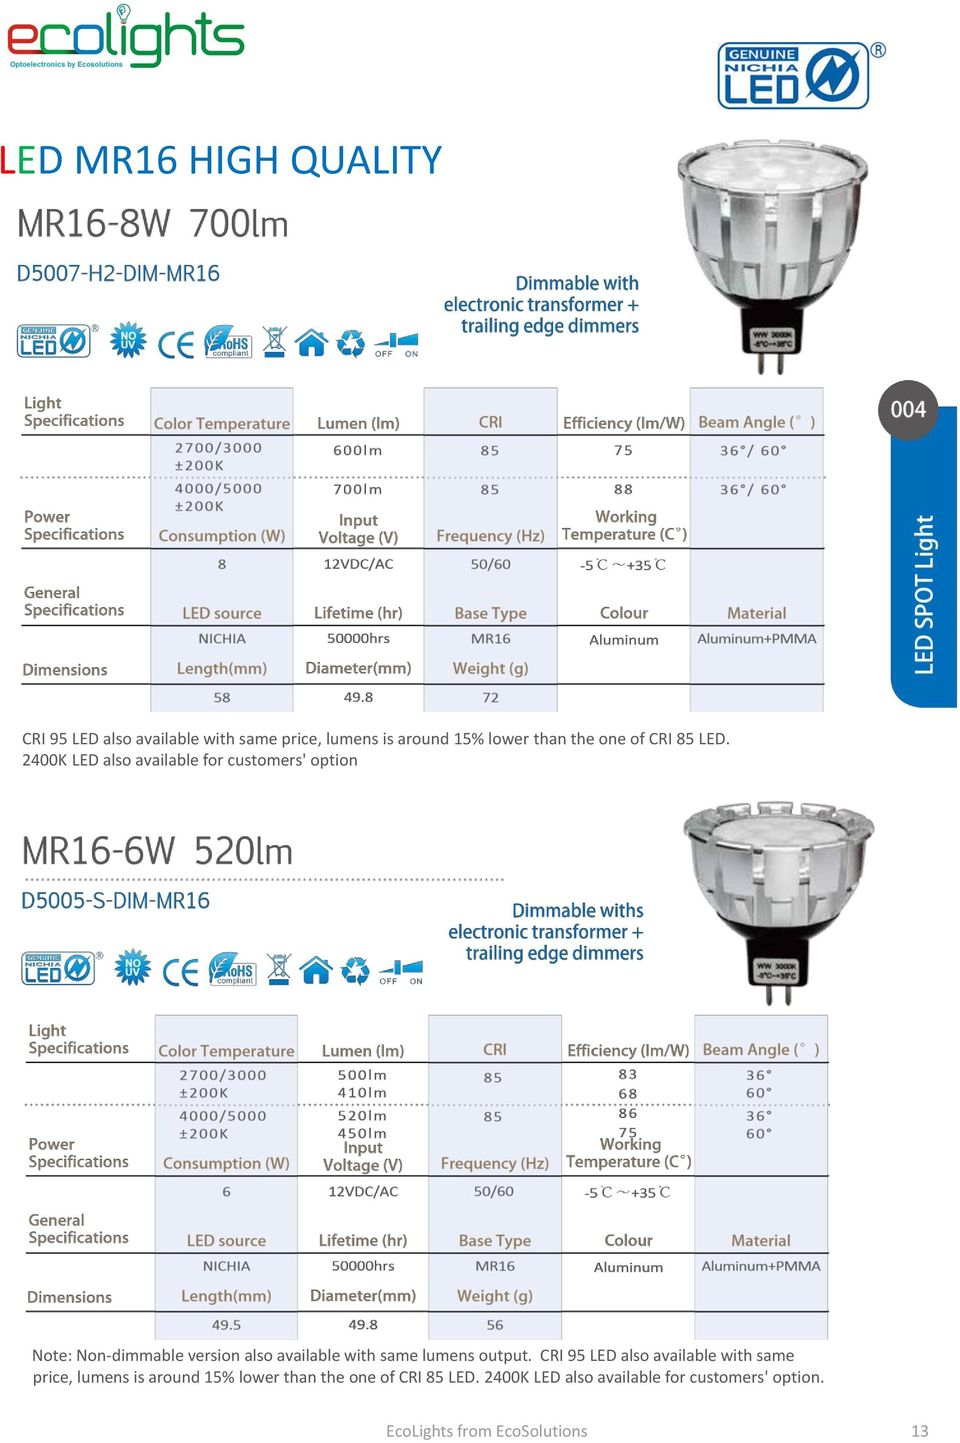 2400K LED also available for customers' option Note: Non-dimmable version also available with same